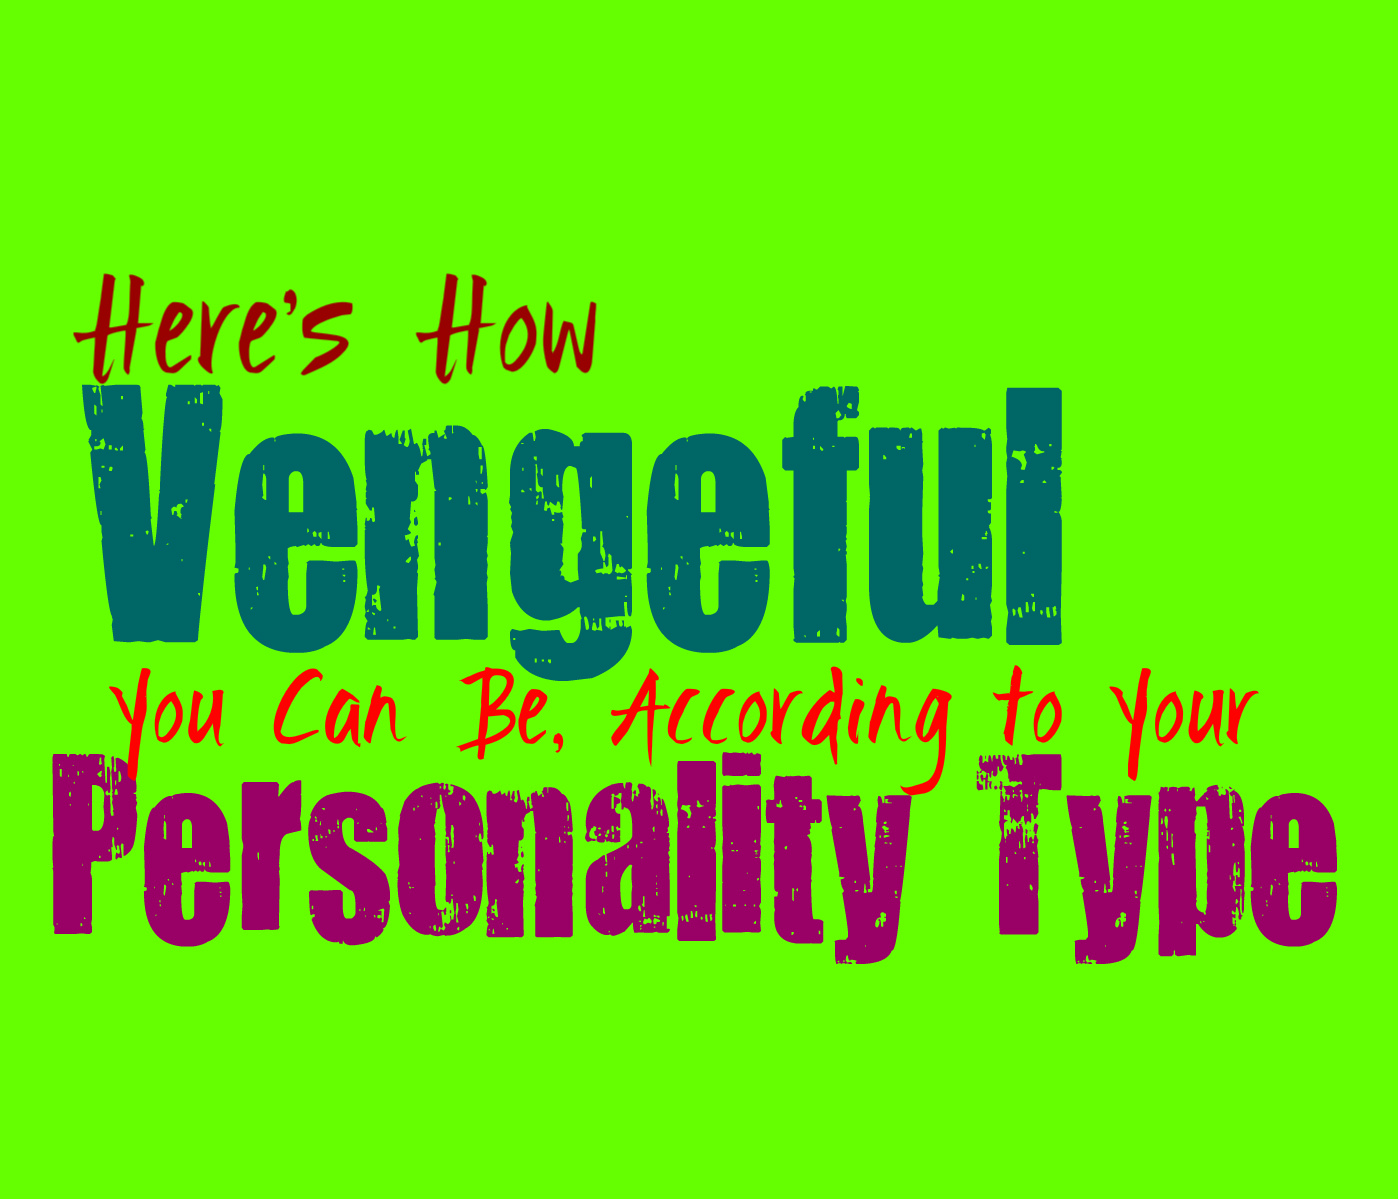 Here's How Vengeful You Can Be, According to Your